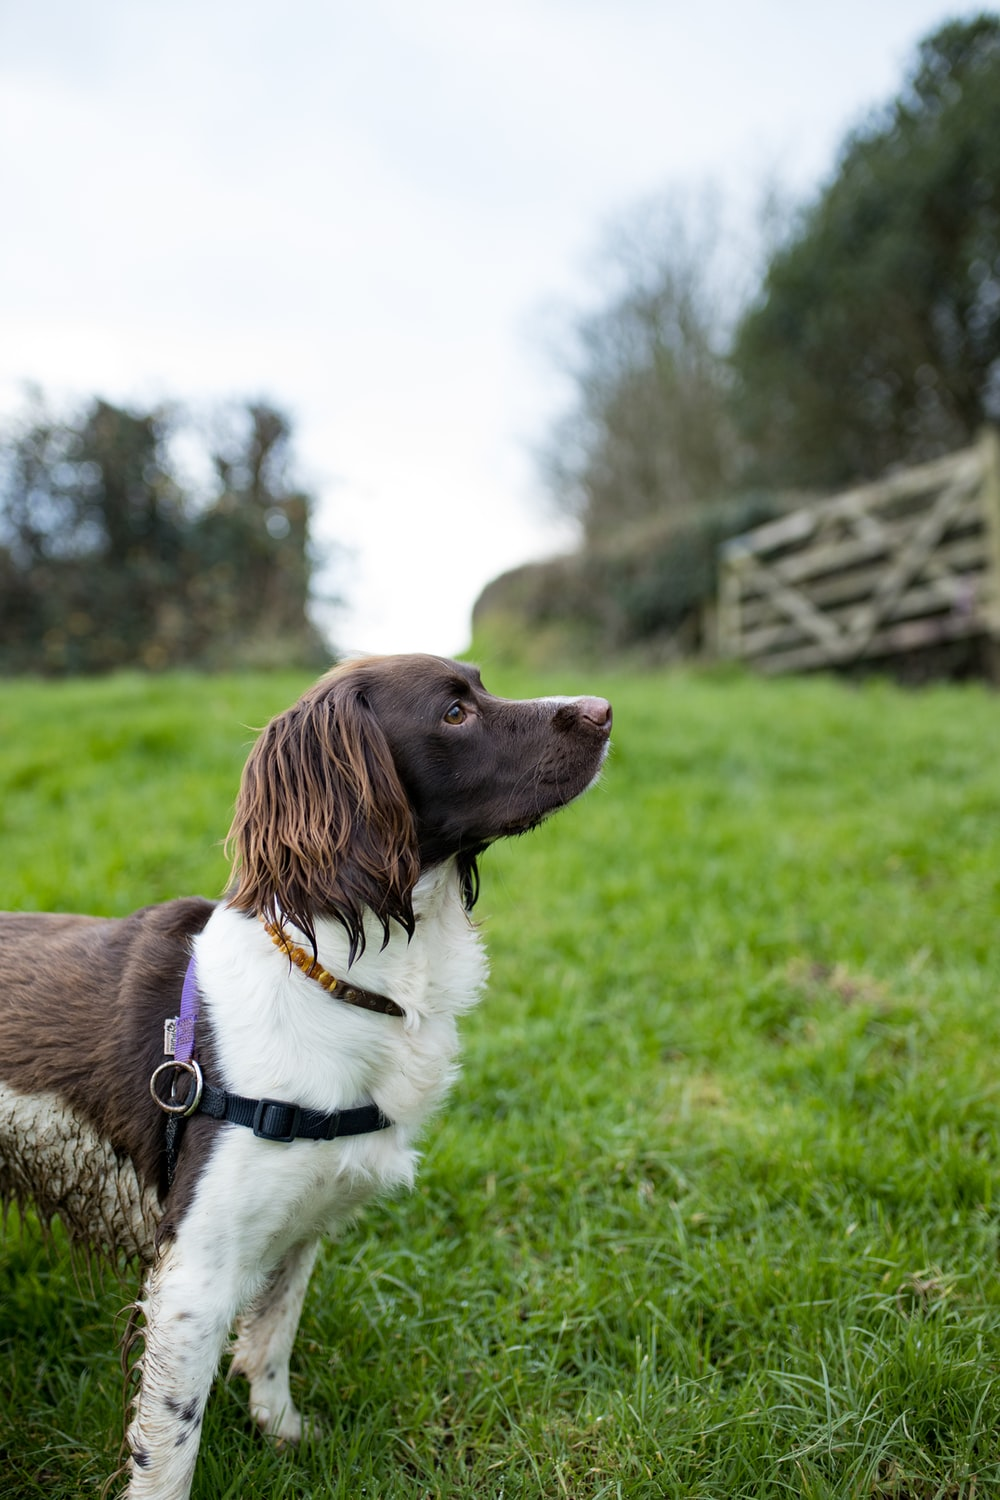 brown and white short coated dog on green grass field during daytime